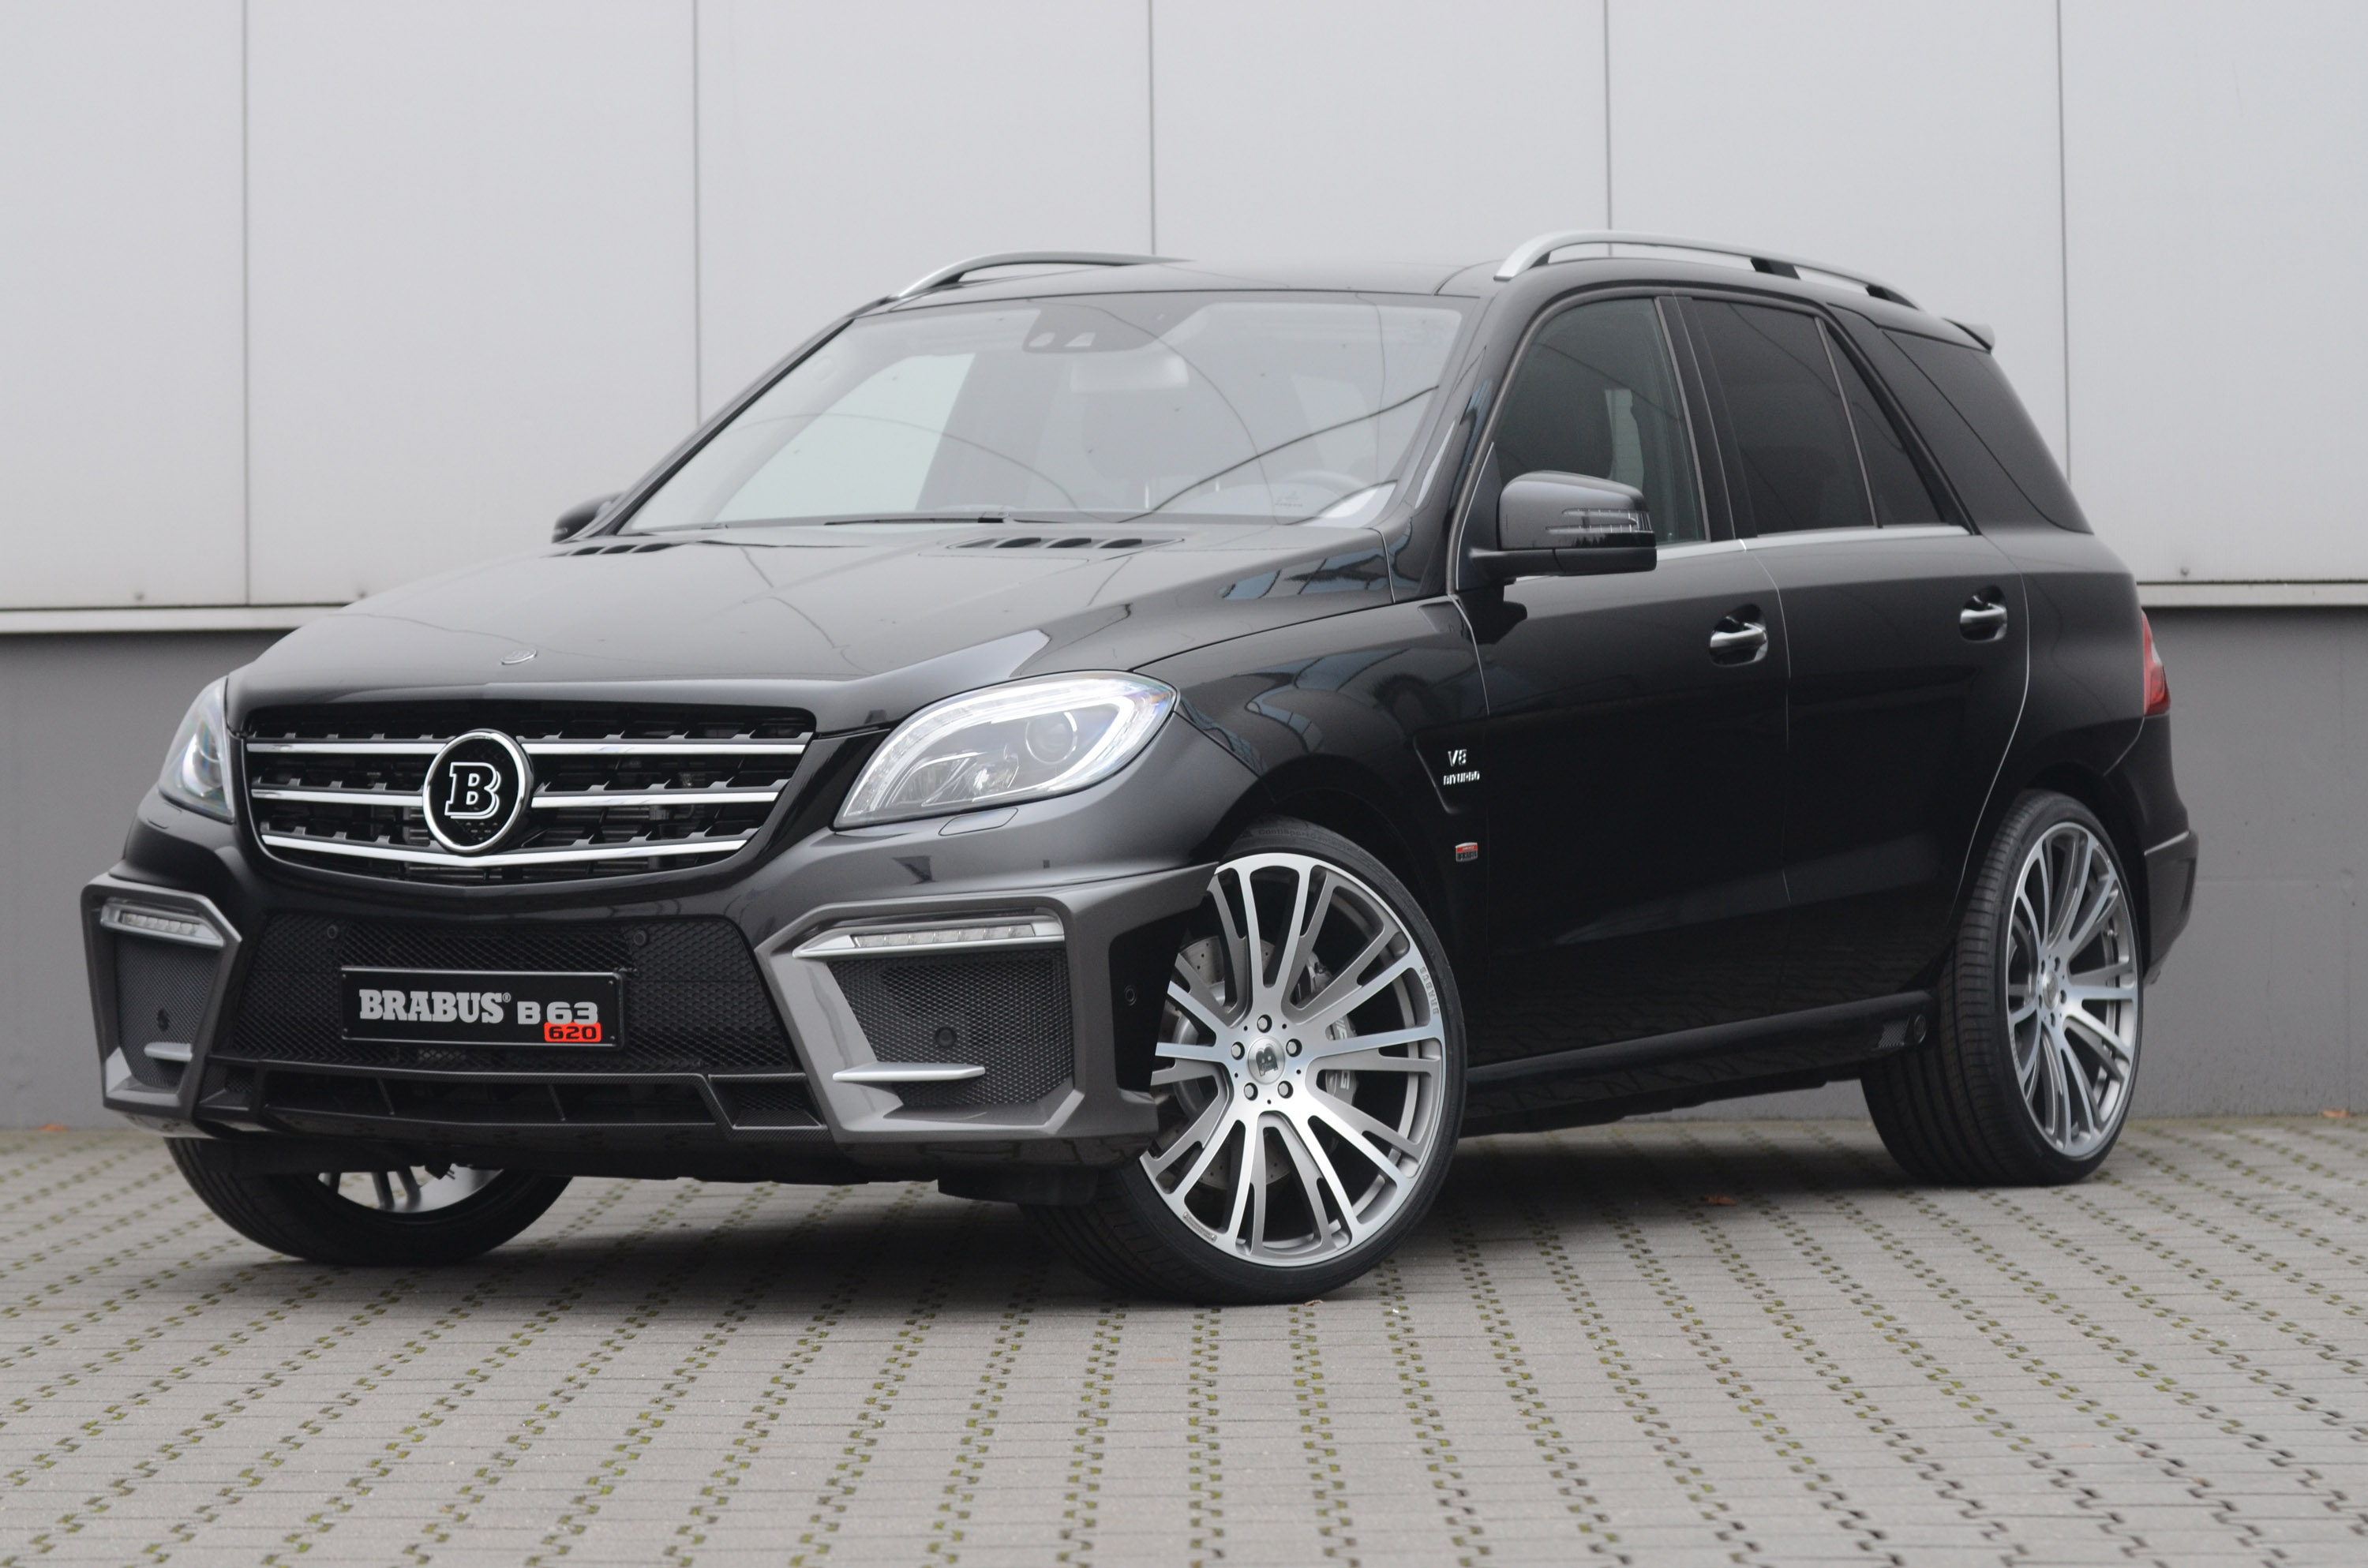 Brabus 2012 mercedes benz ml 63 amg for Mercedes benz brabus amg